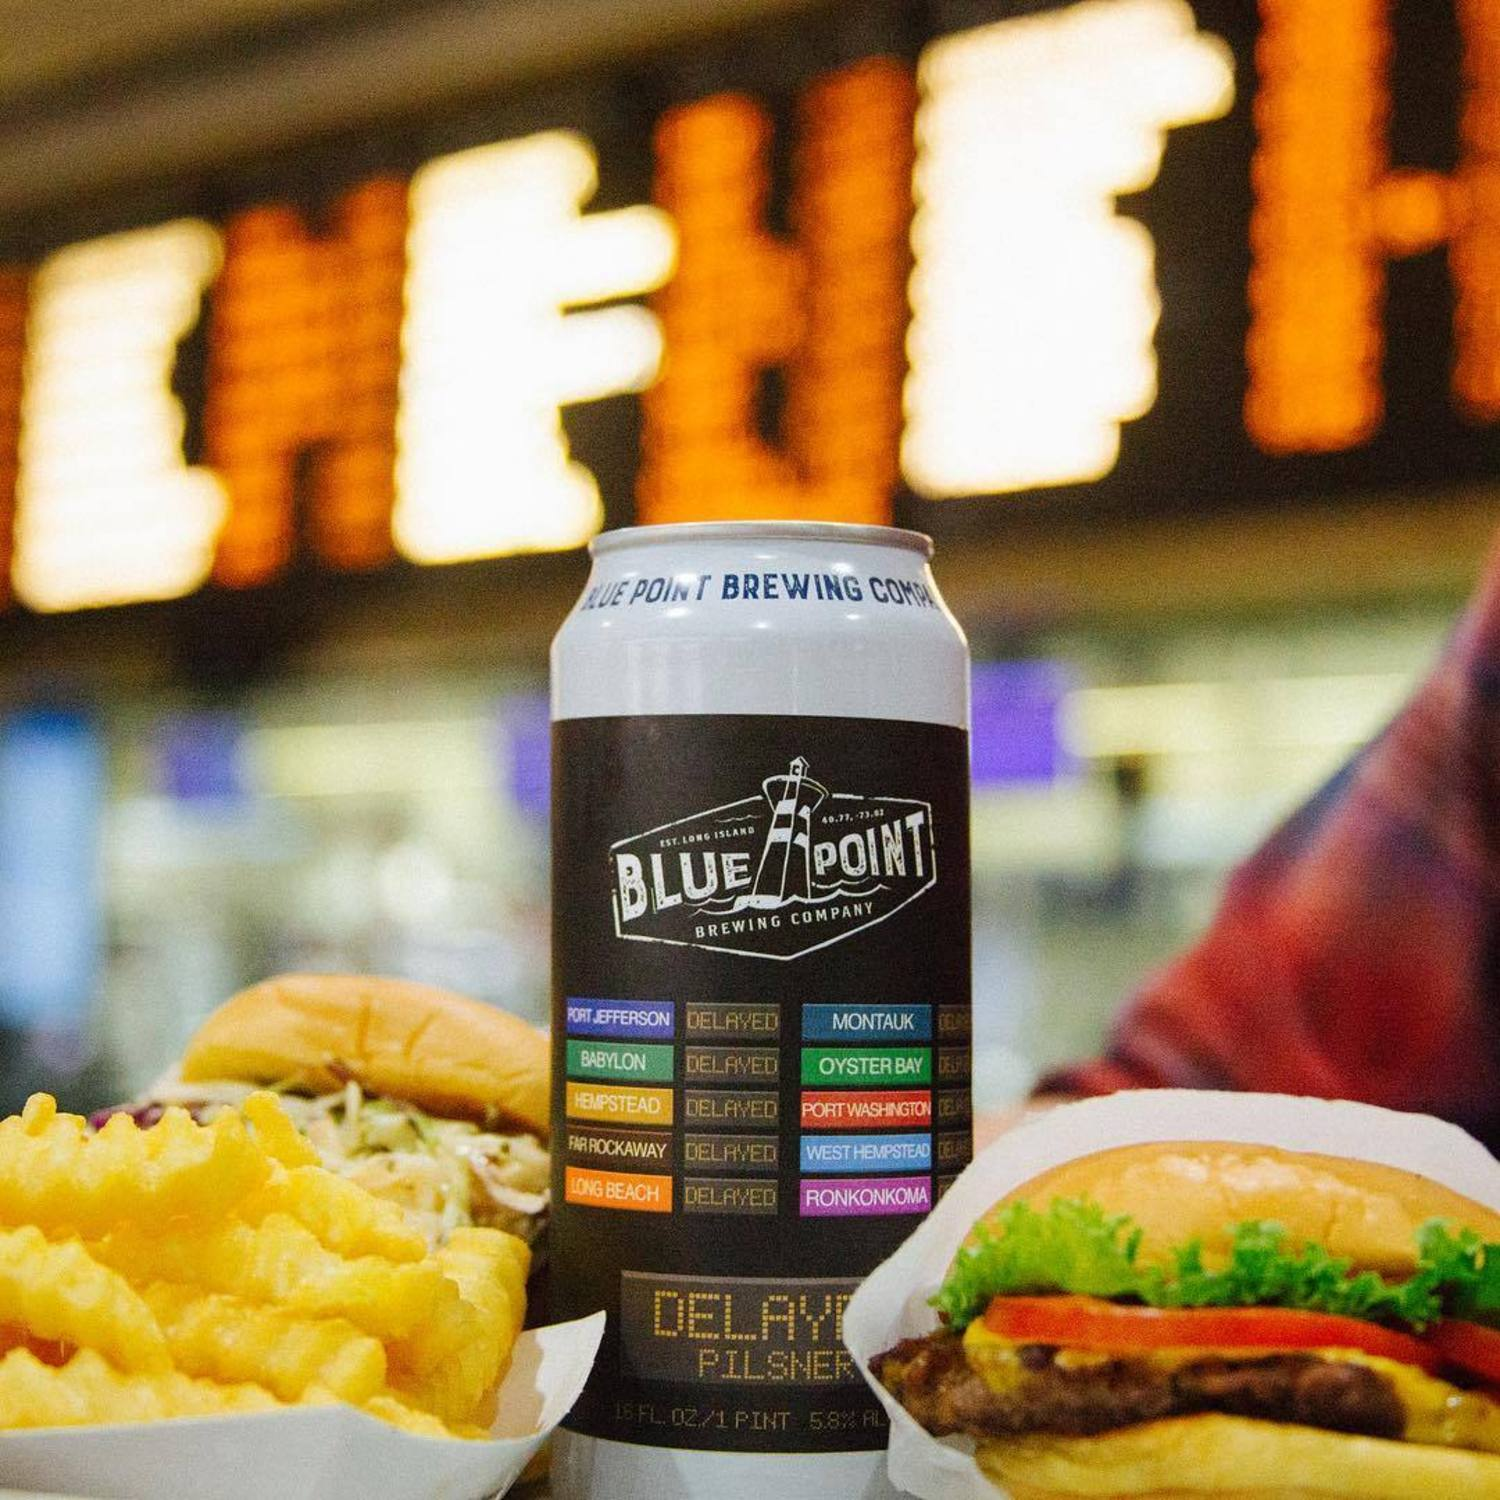 We brewed the ultimate Pilsner to help you through the #SummerofHell. Join us for the DELAYED release party w/@shakeshack in Penn Station, Monday, 8/14 4-8pm. Don't forget to share your commuting woes w/us using #DRINKTHEDELAY